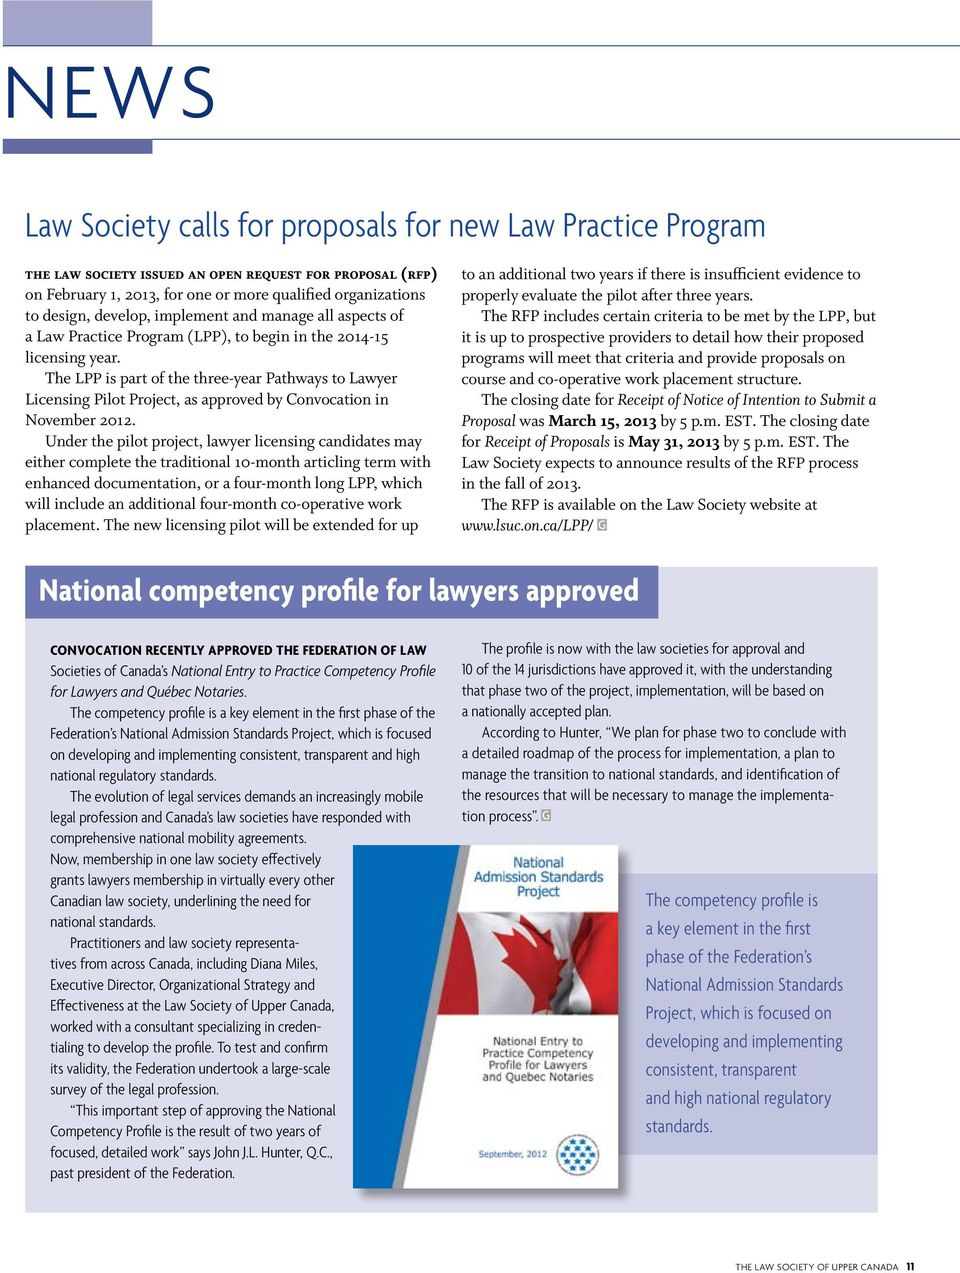 The LPP is part of the three-year Pathways to Lawyer Licensing Pilot Project, as approved by Convocation in November 2012.